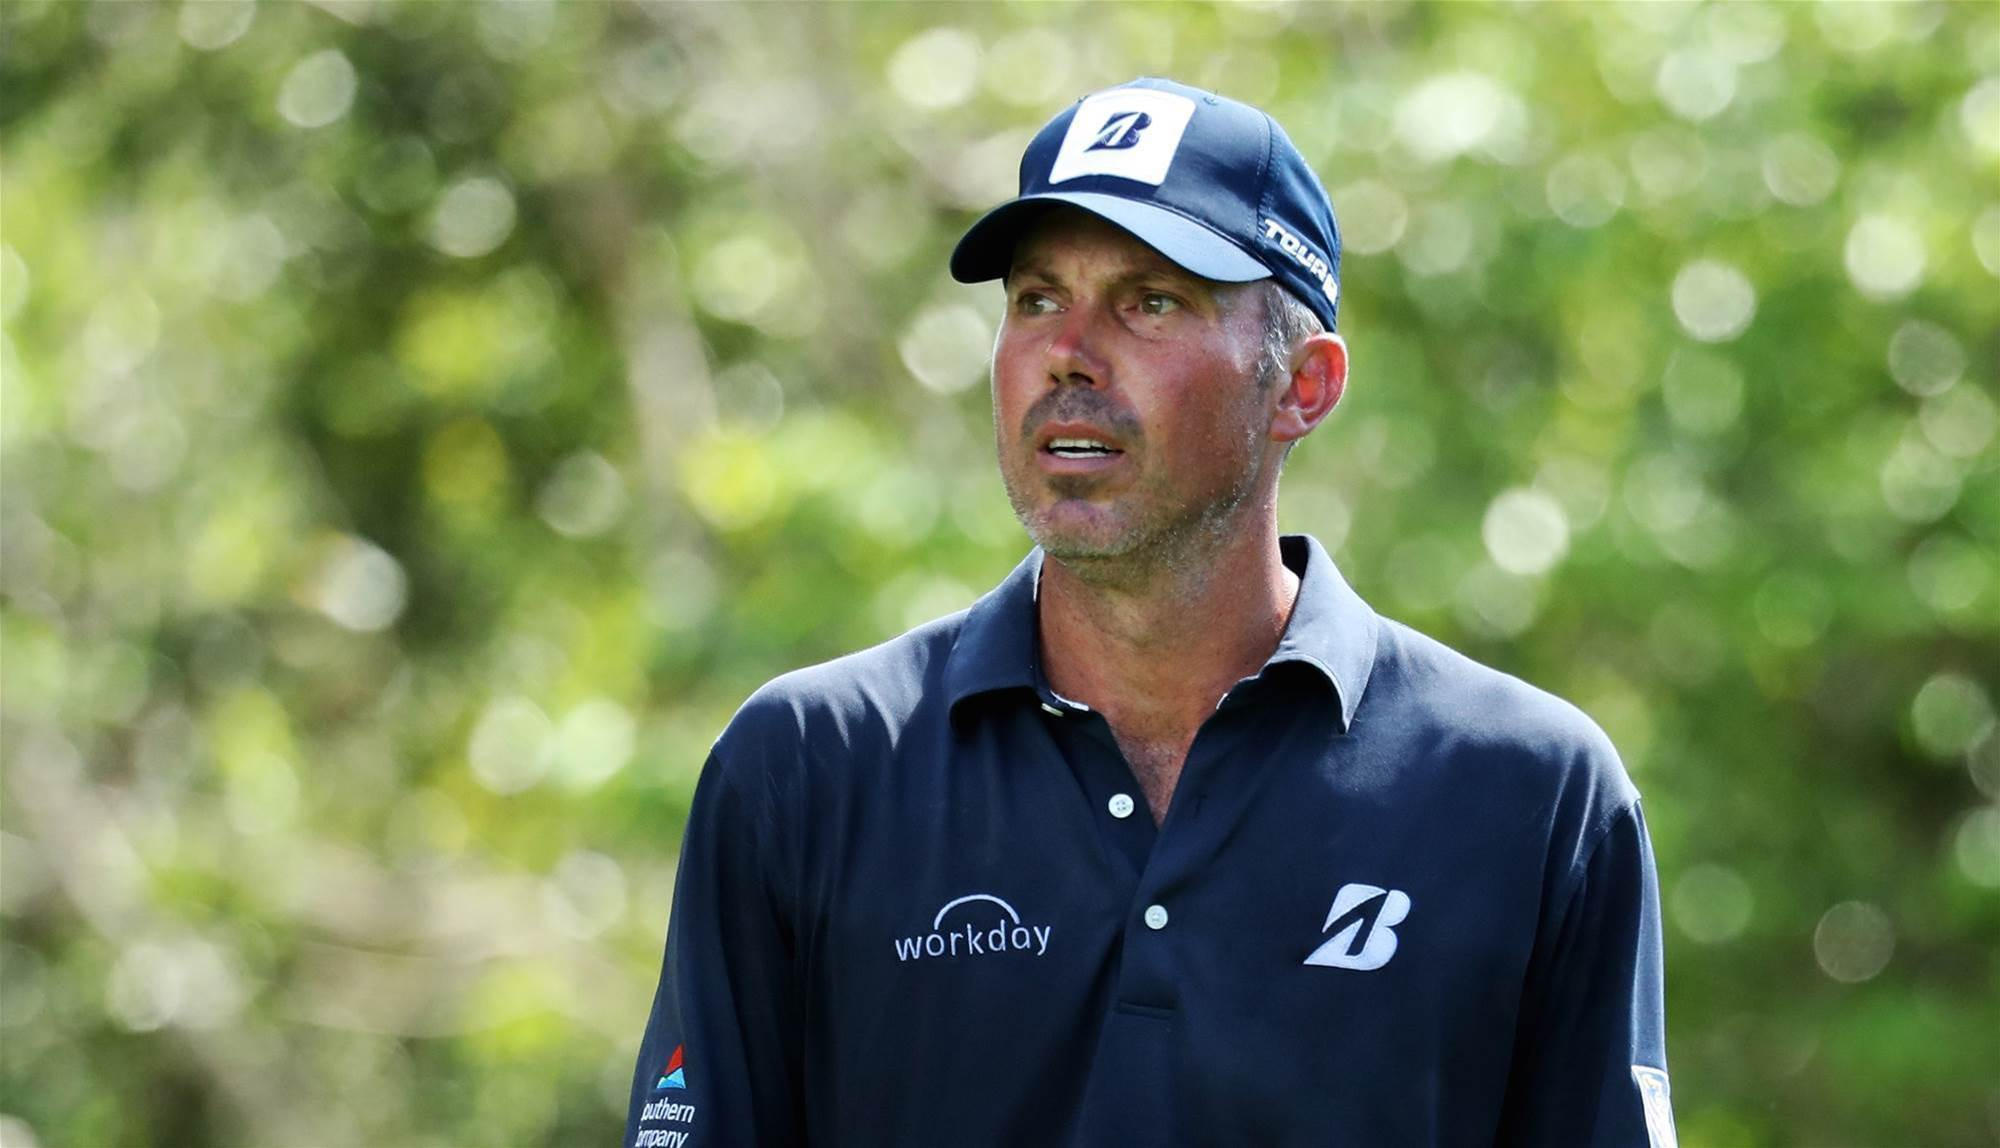 Mad dash throws out Kuchar's Open plans